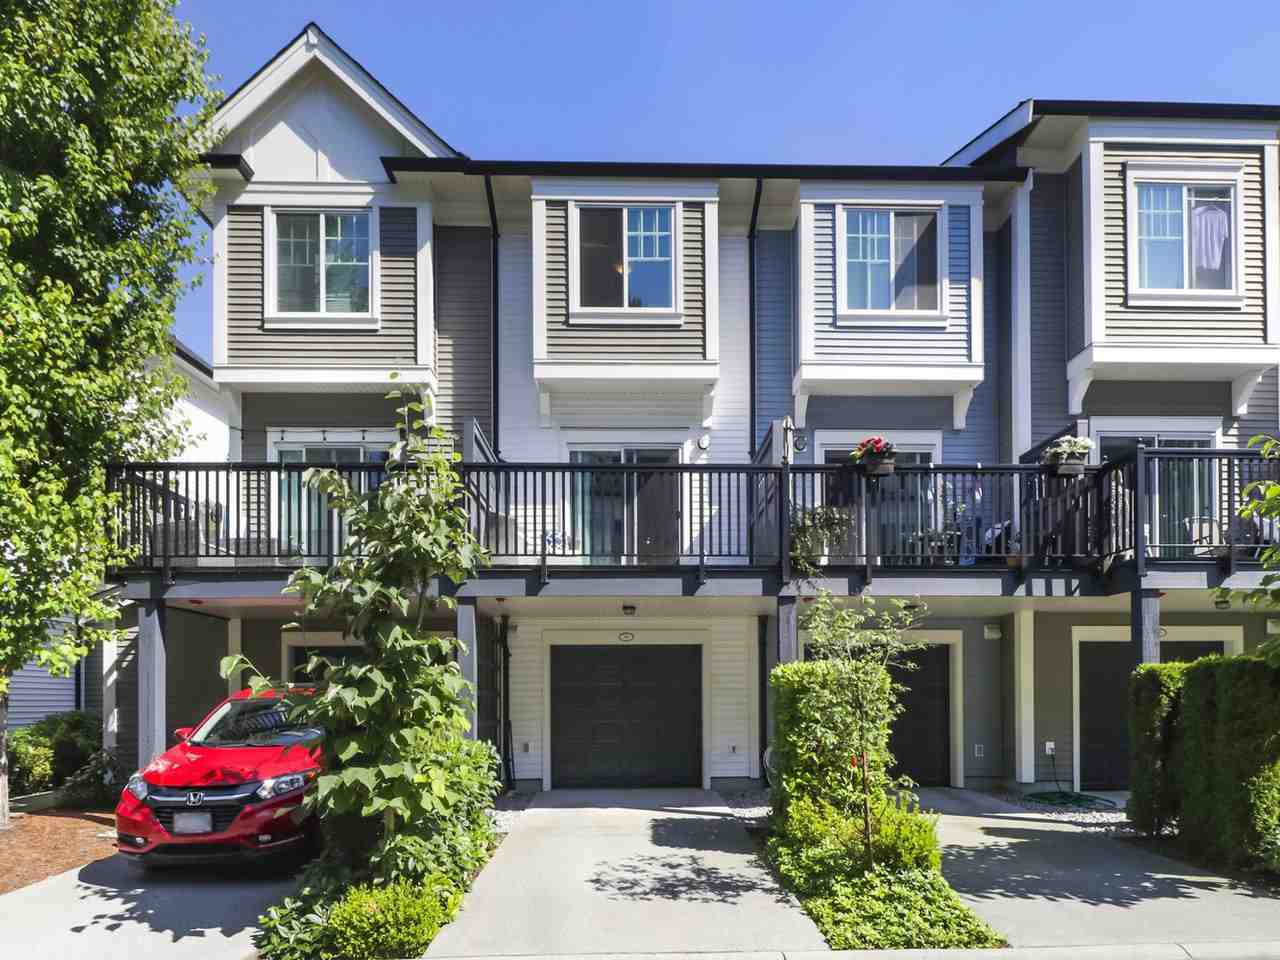 """Main Photo: 93 3010 RIVERBEND Drive in Coquitlam: Coquitlam East Townhouse for sale in """"Westwood by Mosiac"""" : MLS®# R2478728"""